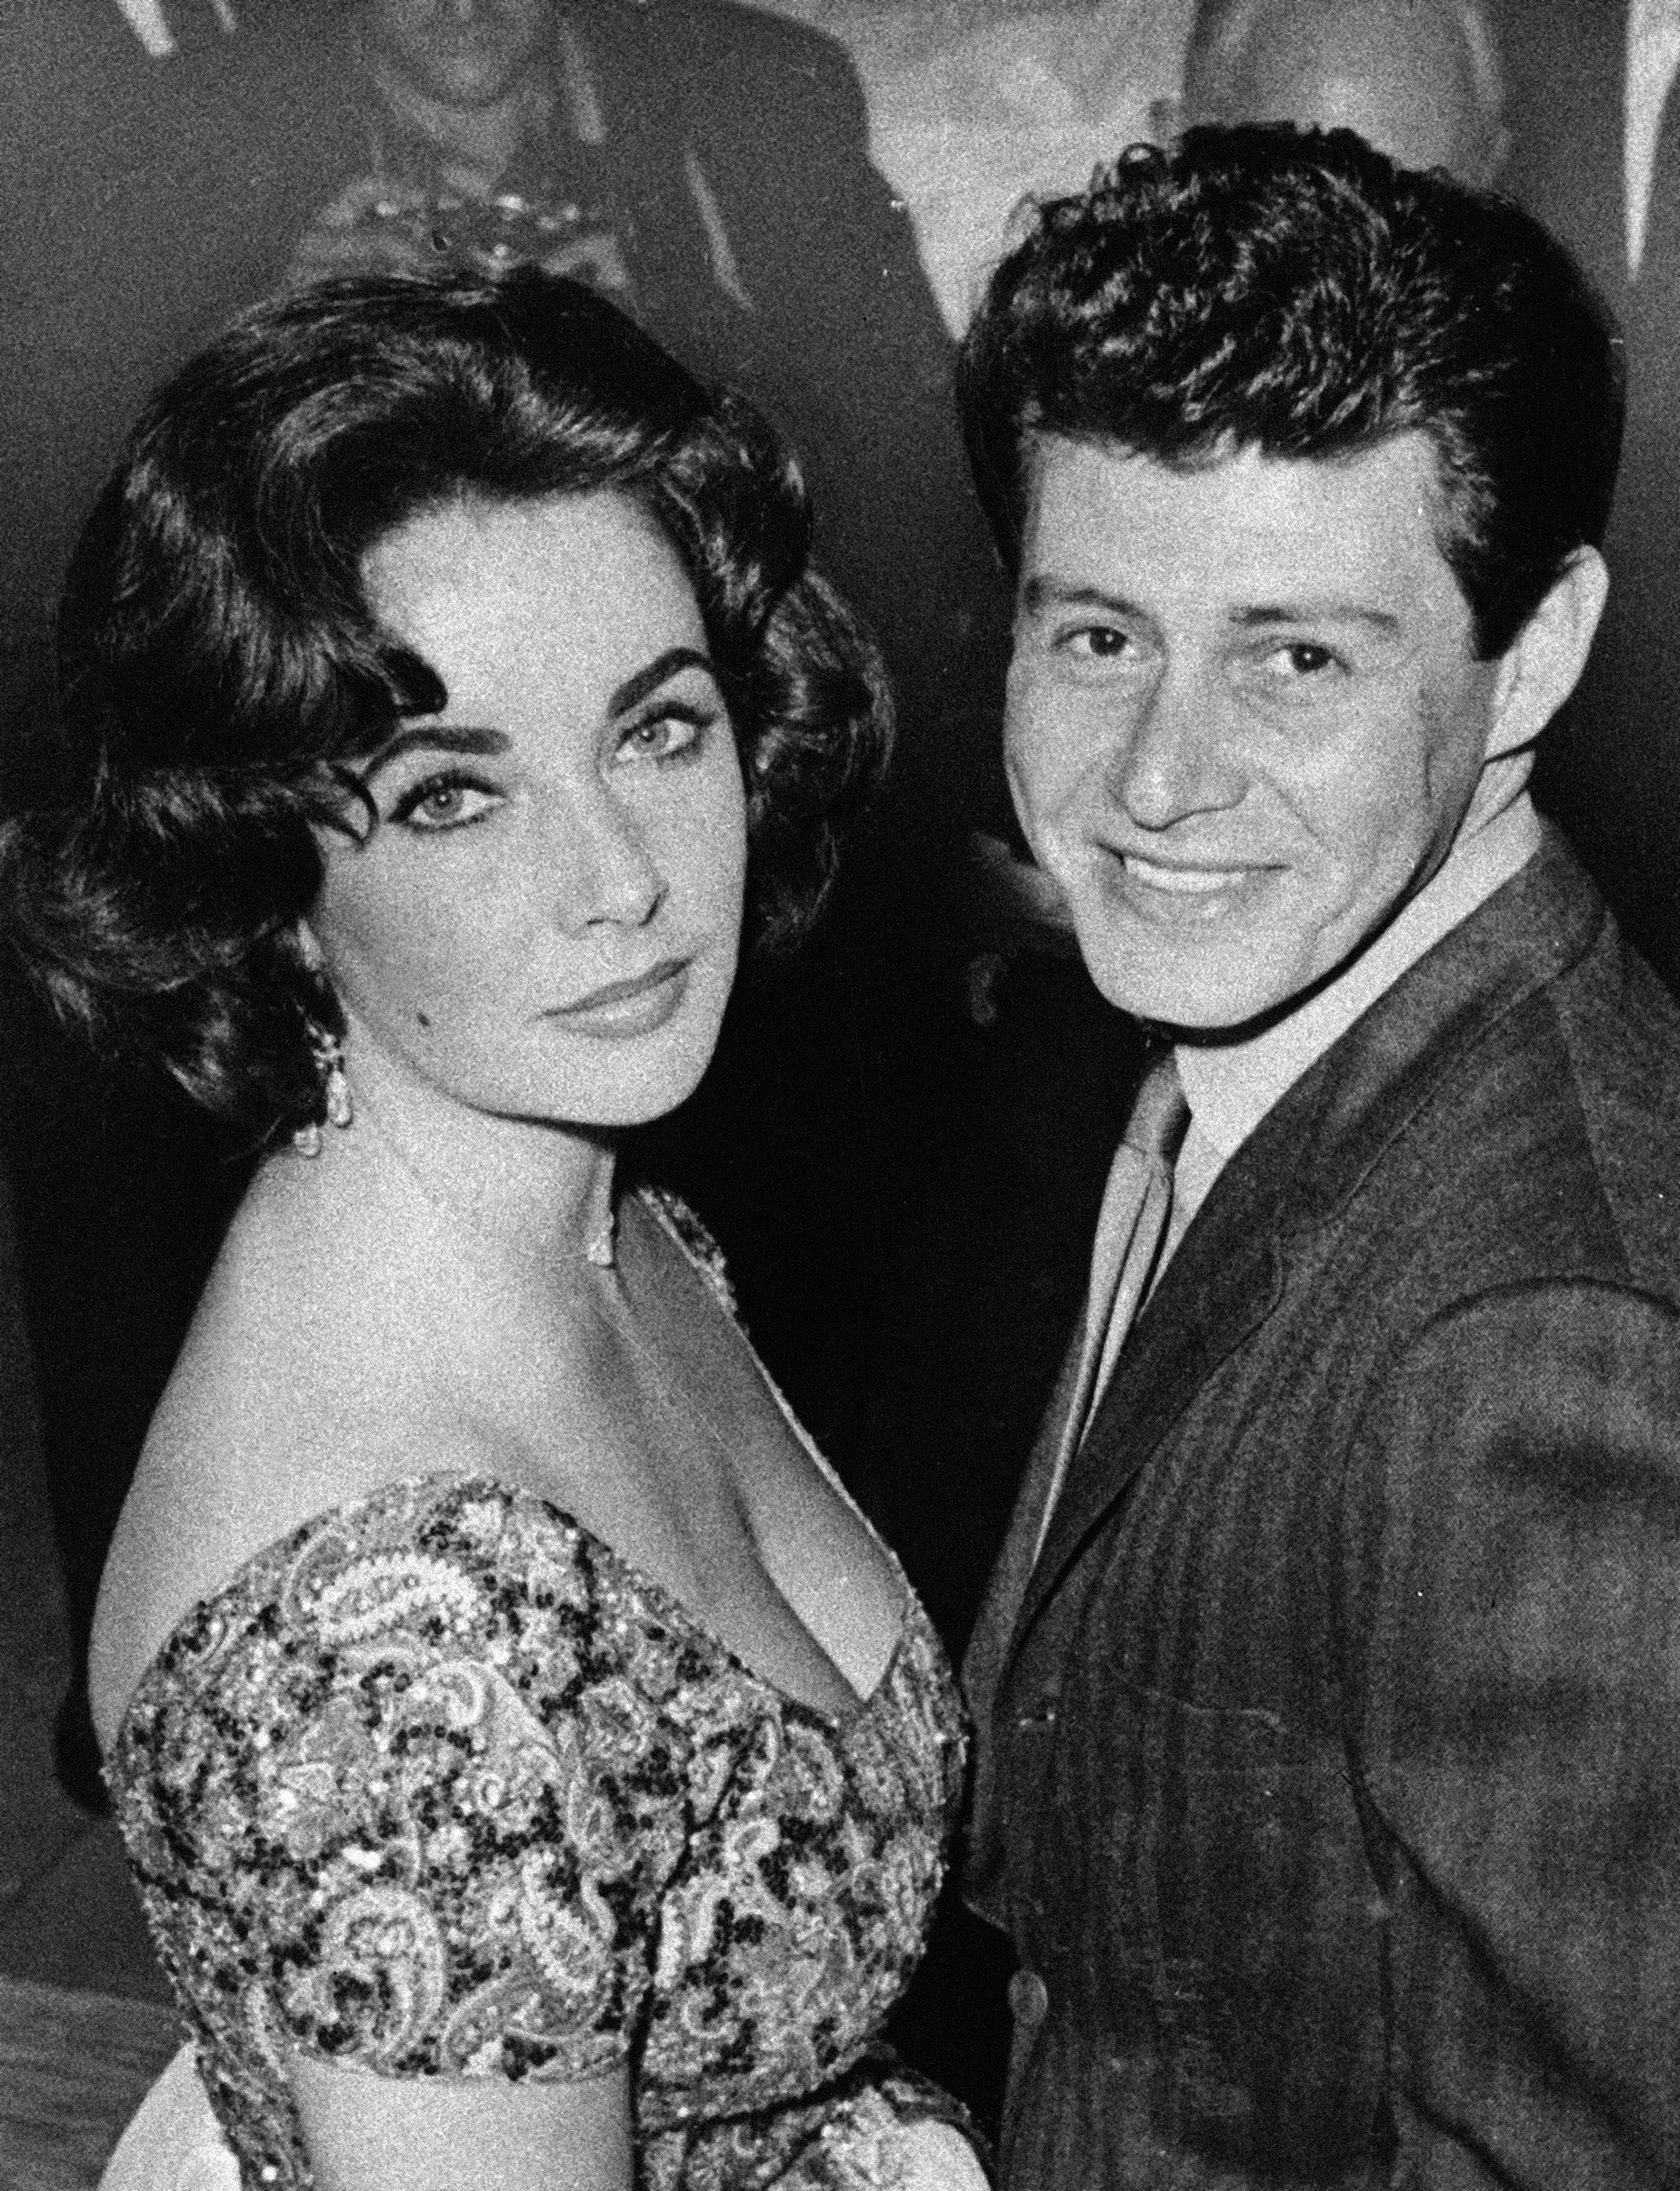 Actress Elizabeth Taylor is seen with singer Eddie Fisher before their marriage in 1959.